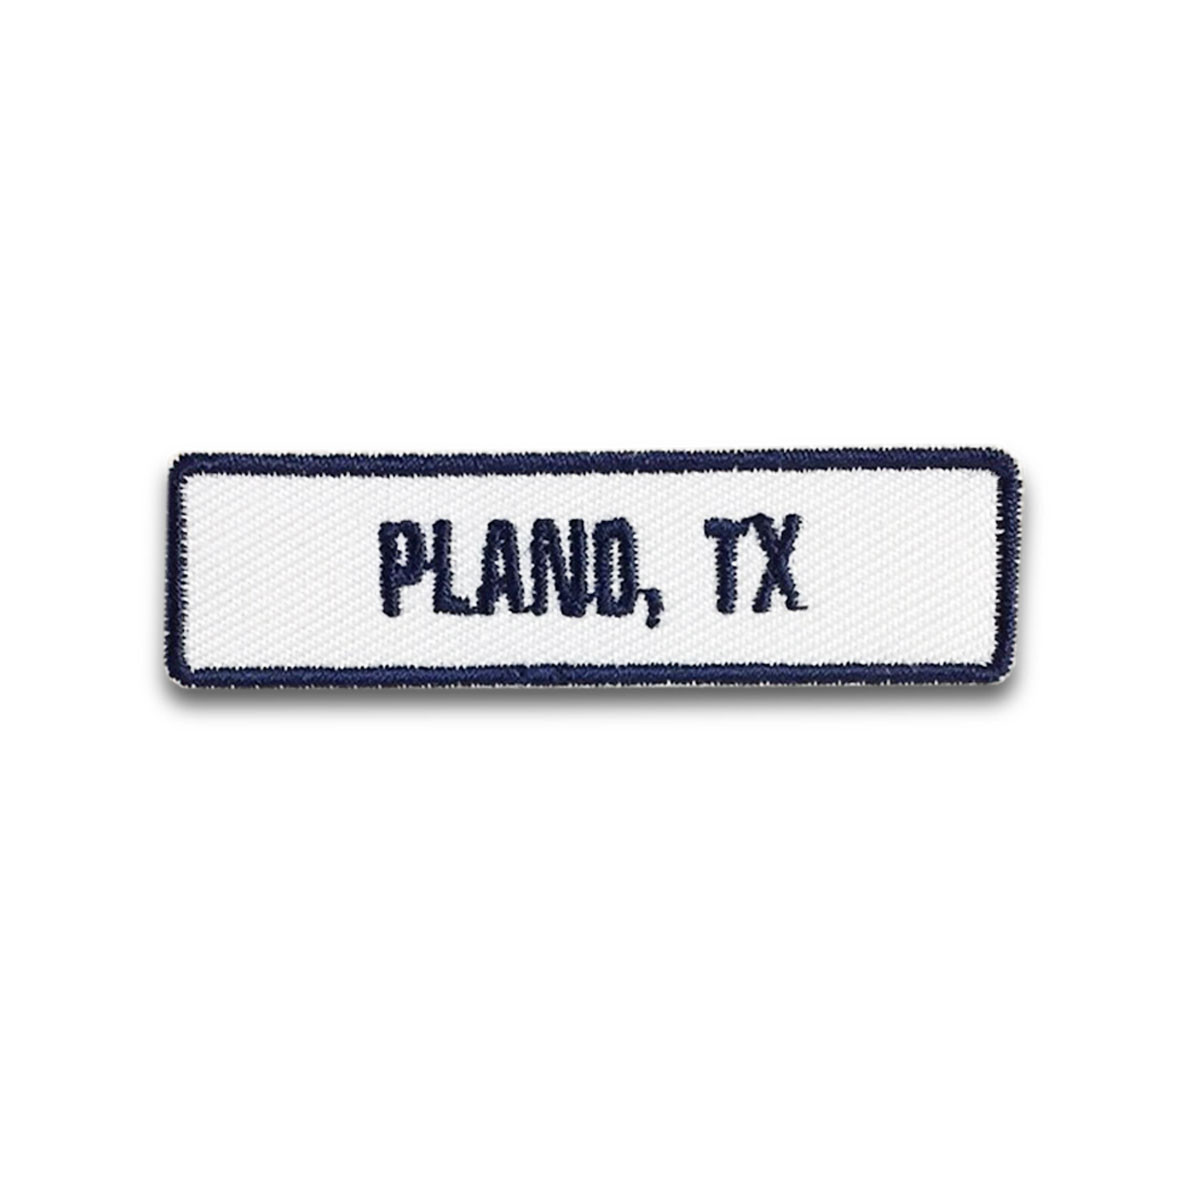 Plano, TX Rocker Patch